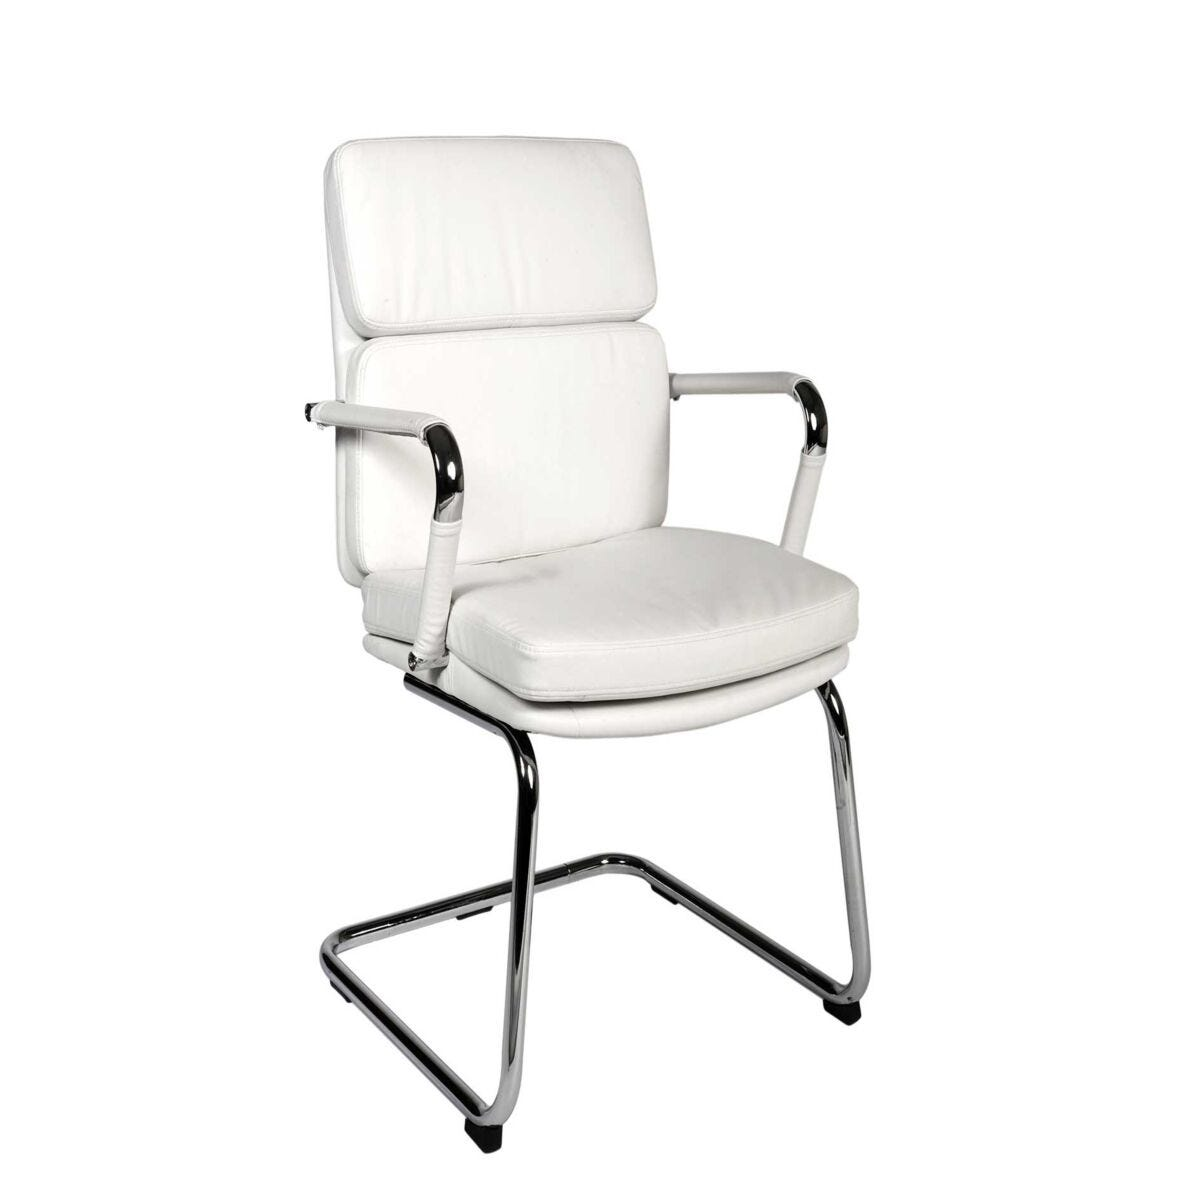 Teknik Office Deco Visitor Retro Style Visitors Chair